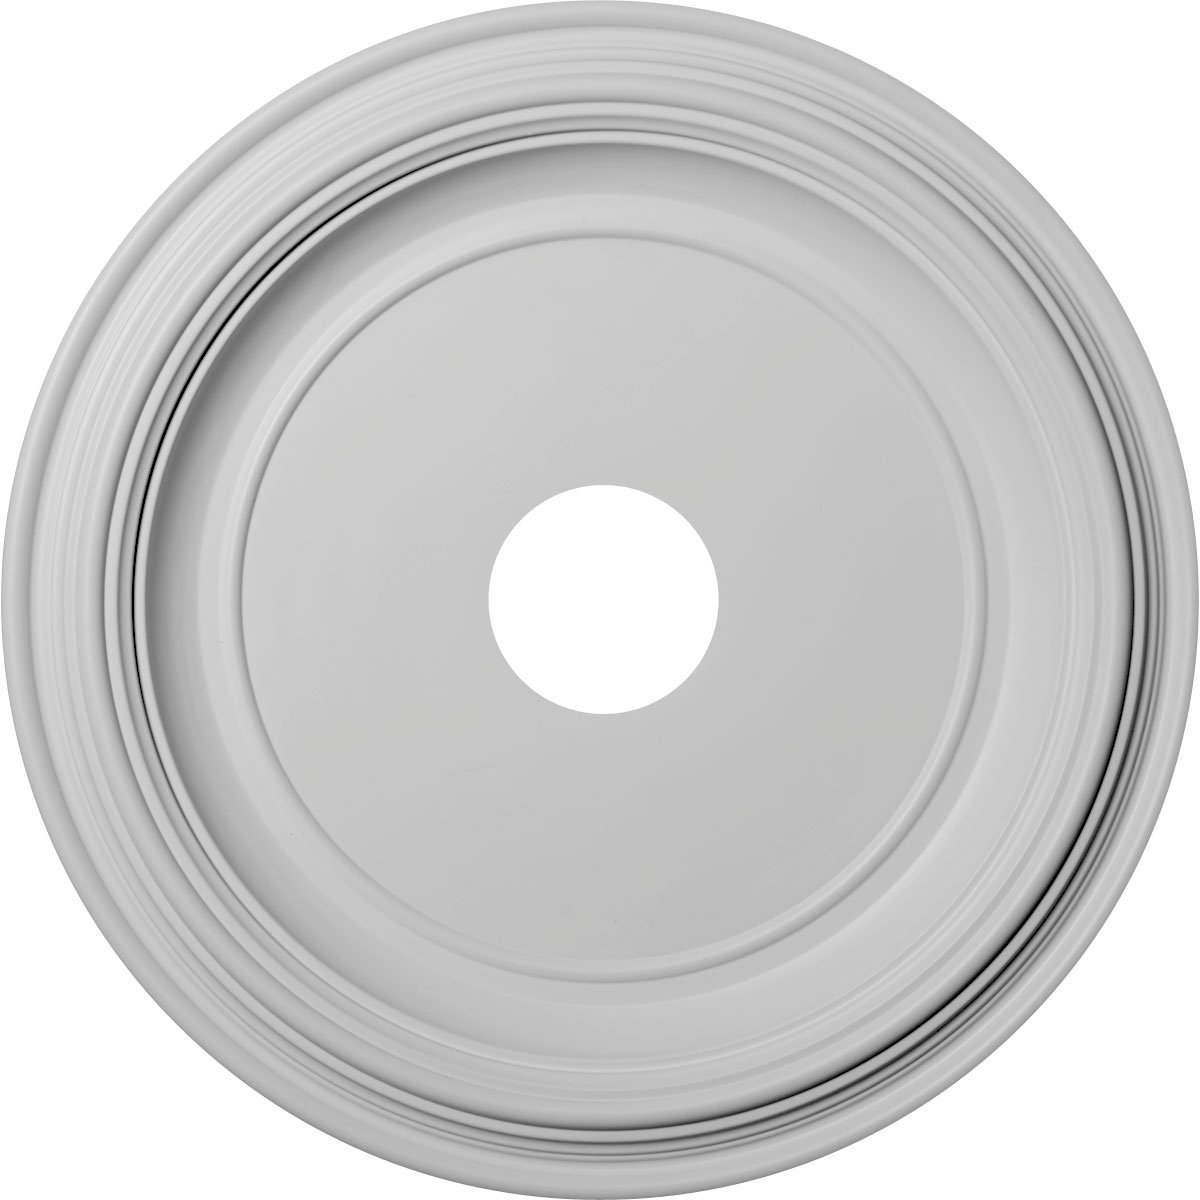 Ekena Millwork CMP19TR Traditional Thermoformed PVC Ceiling Medallion, 19''OD x 3 1/2''ID x 1 1/2''P (Fits Canopies up to 11 1/2''), White